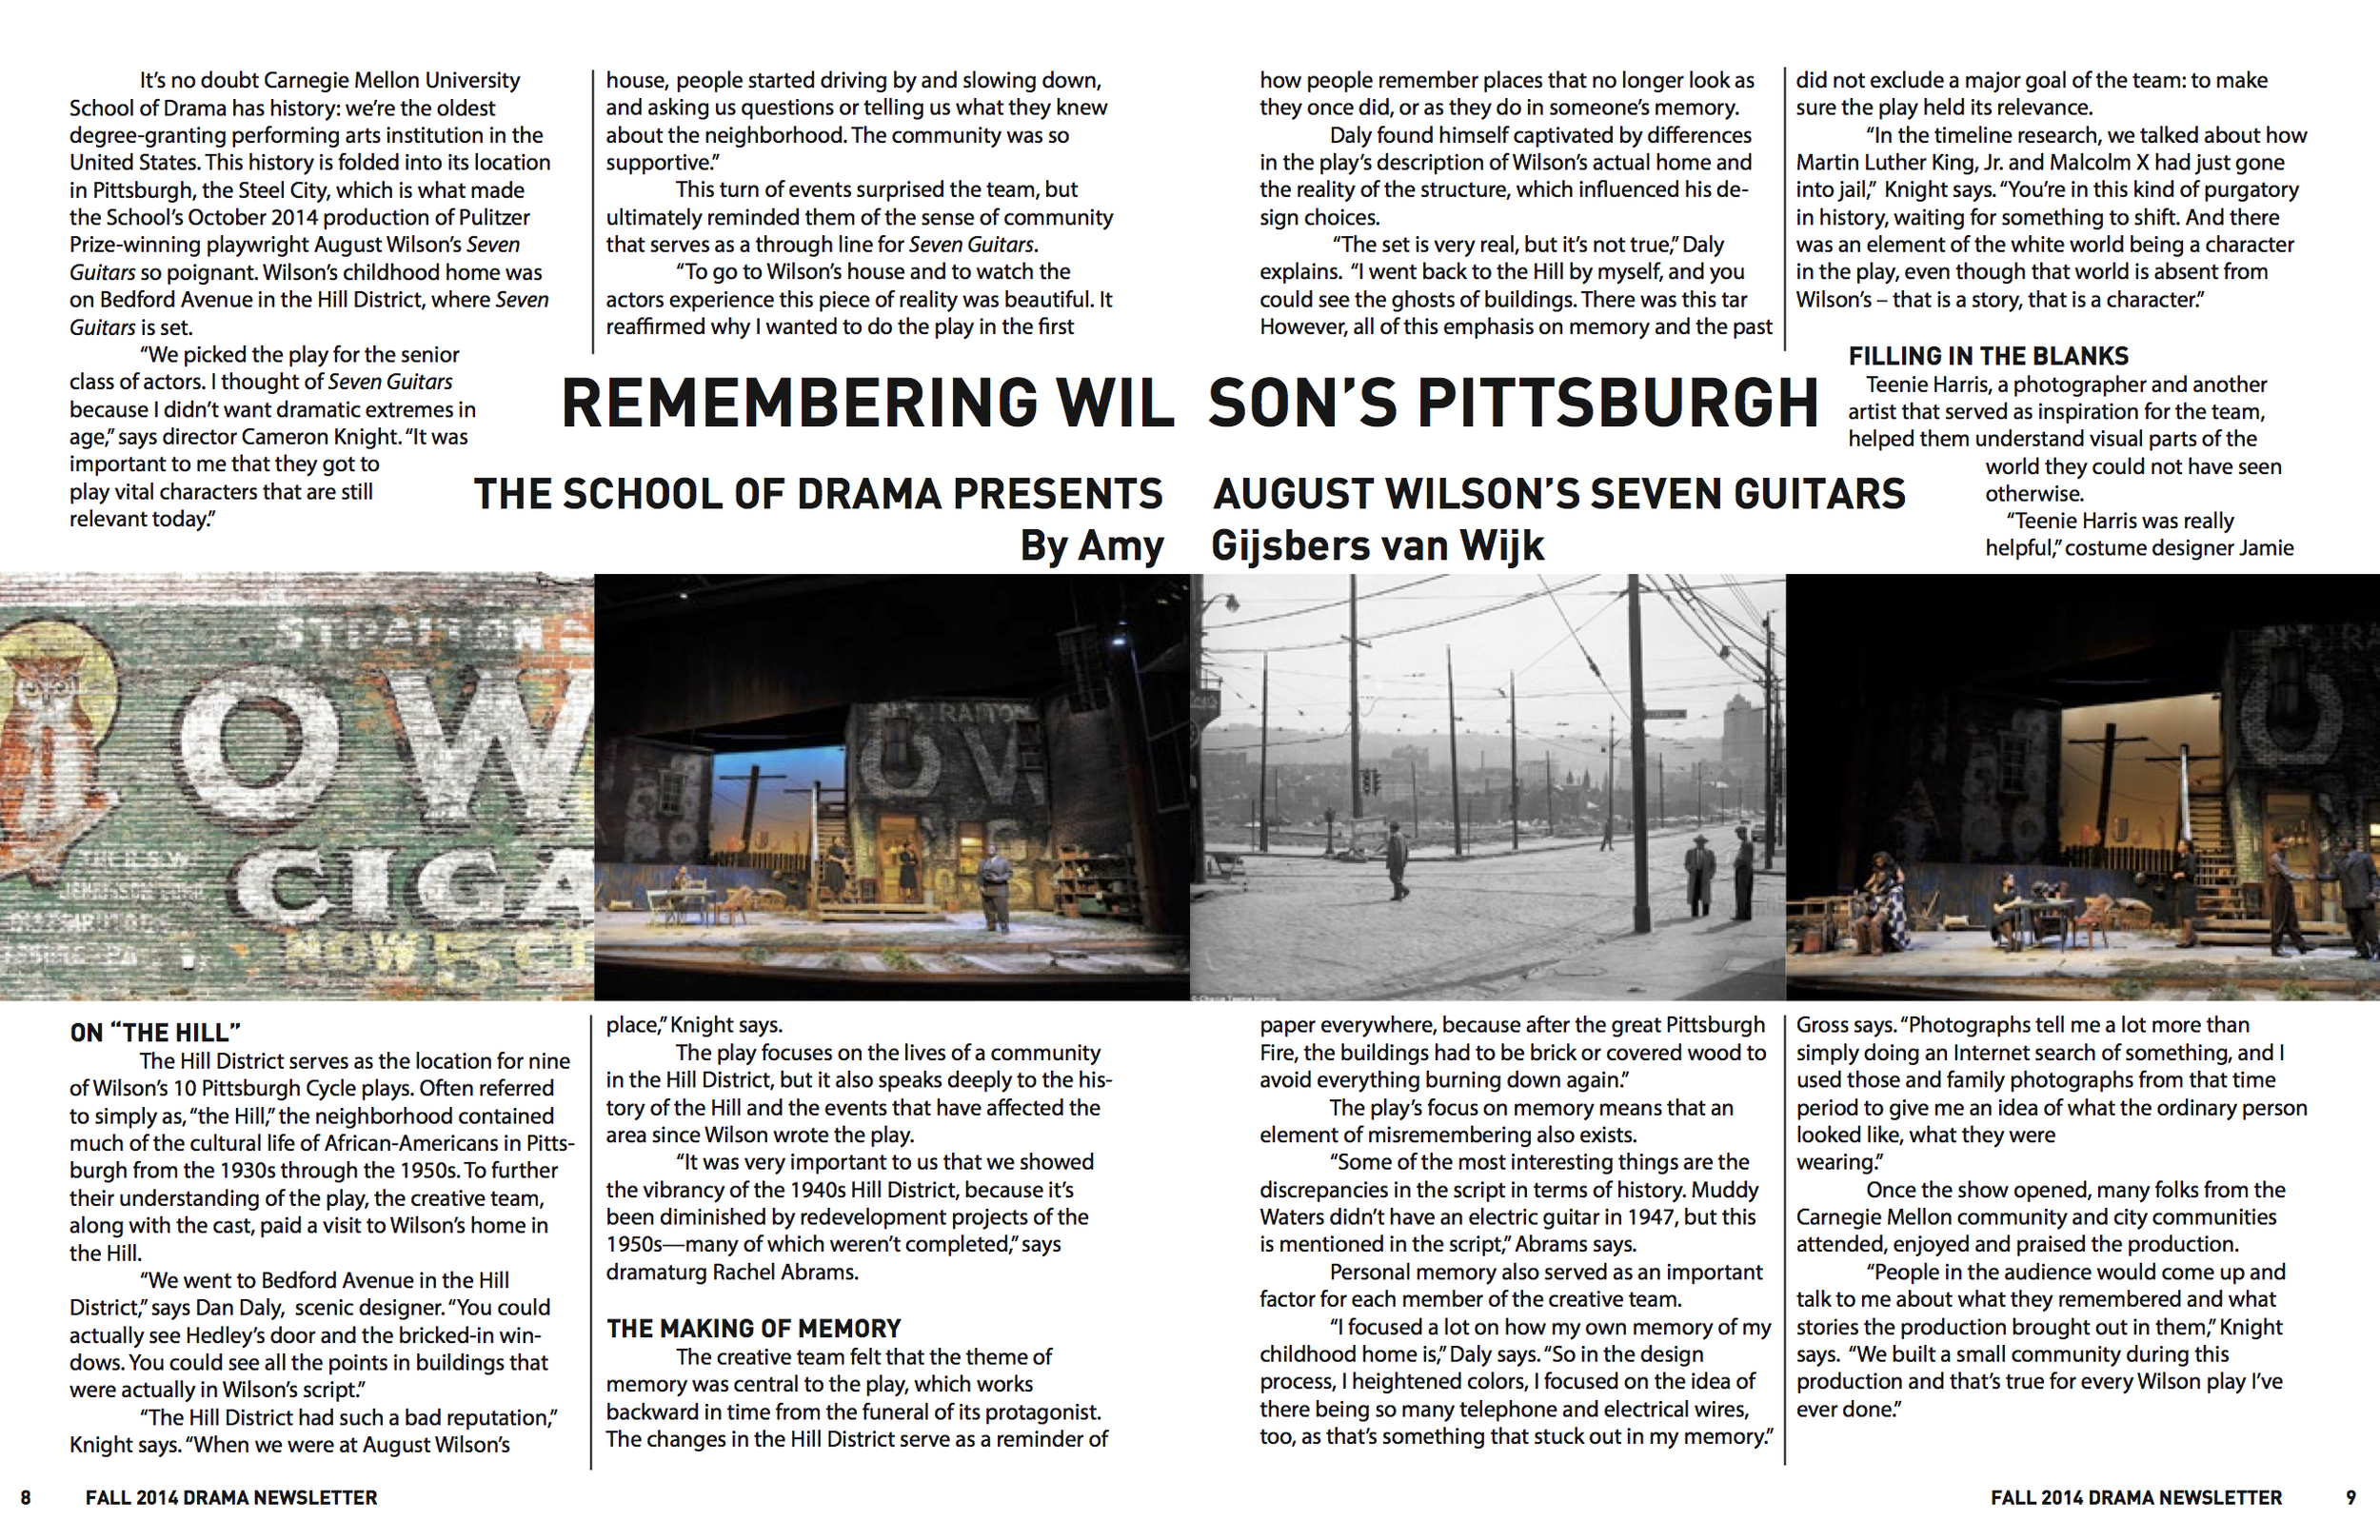 Center Spread of my article about Carnegie Mellon University's  Seven Guitars production (2014)